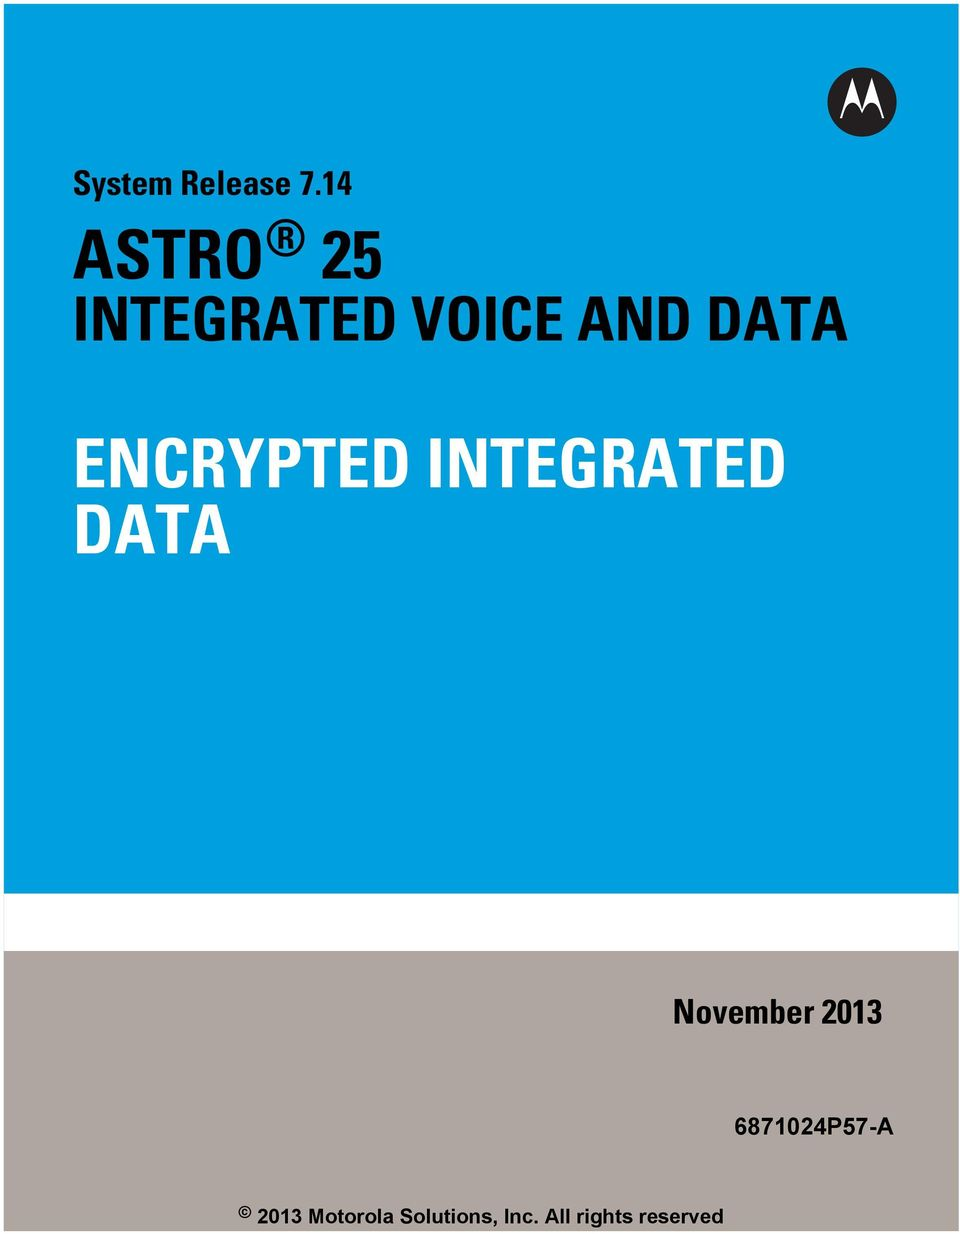 ENCRYPTED INTEGRATED DATA - PDF